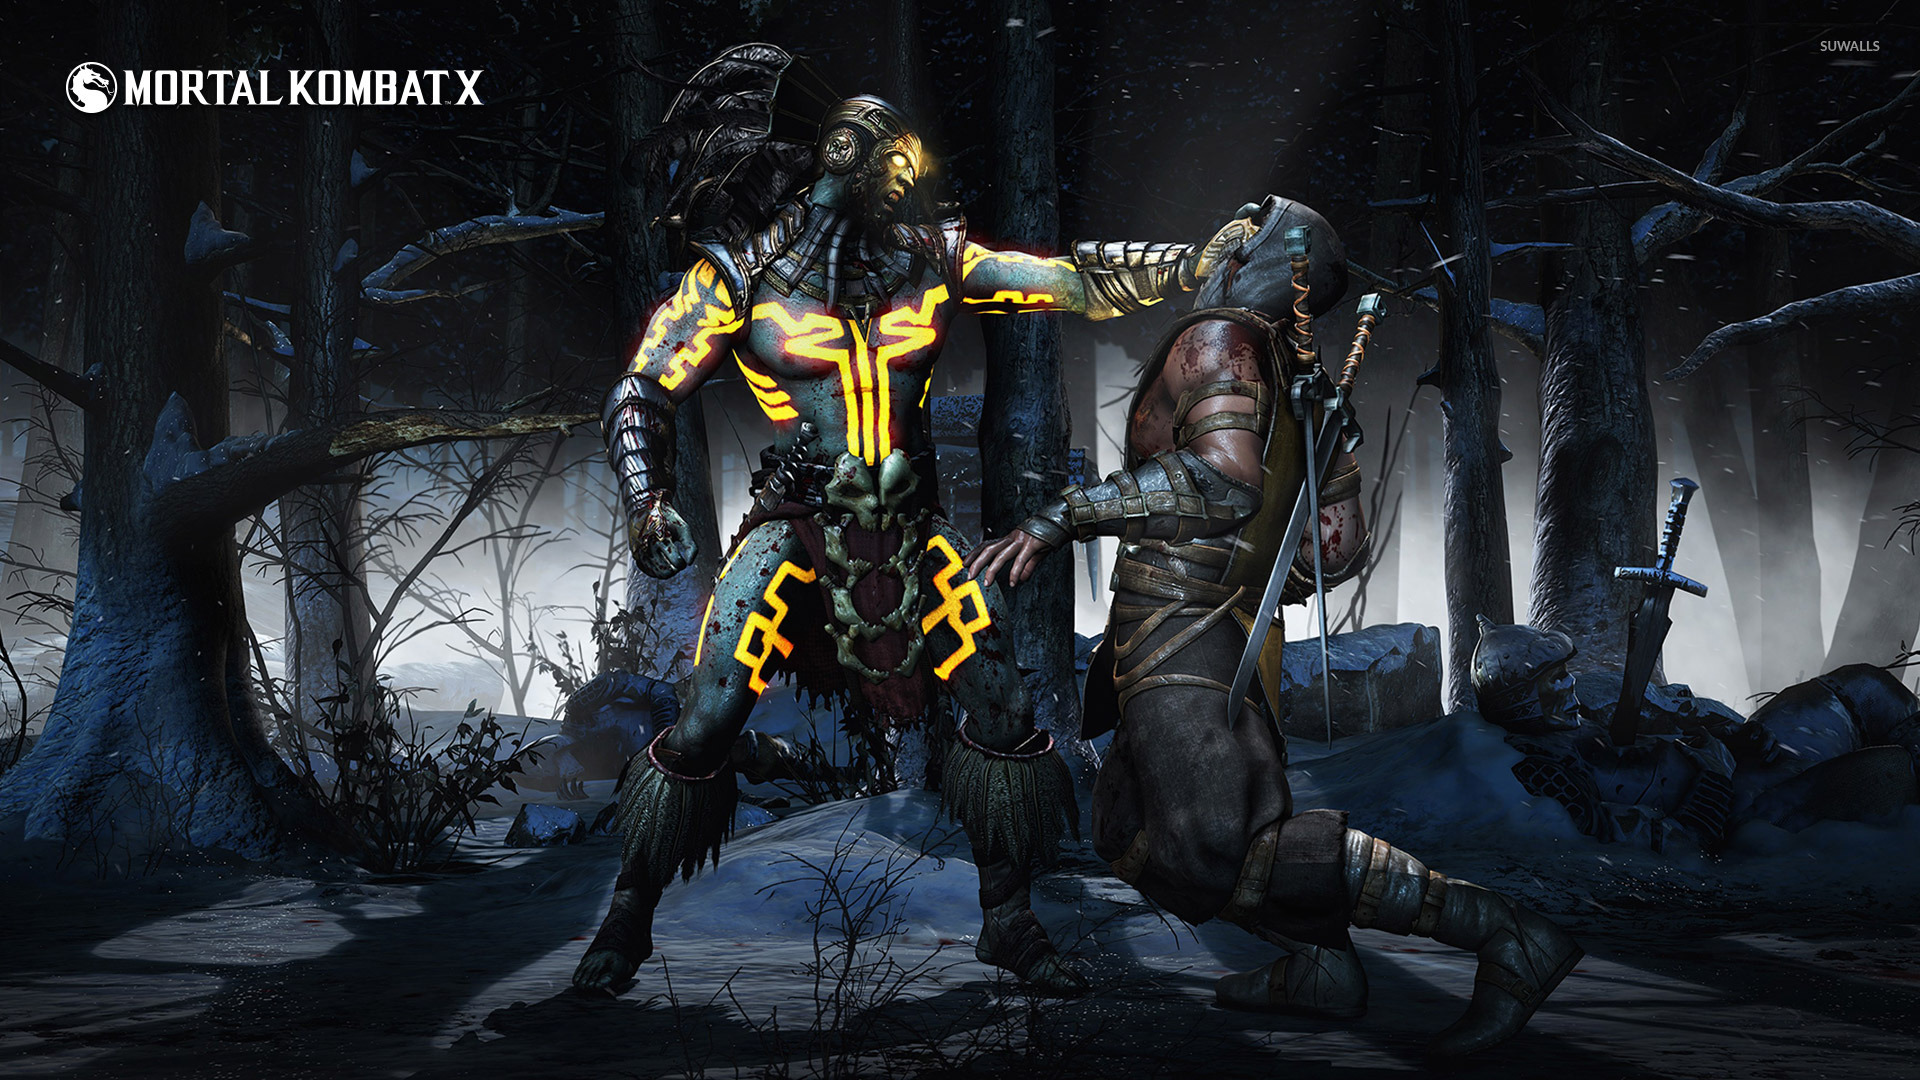 Mortal Kombat X 3 Wallpaper Game Wallpapers 31448